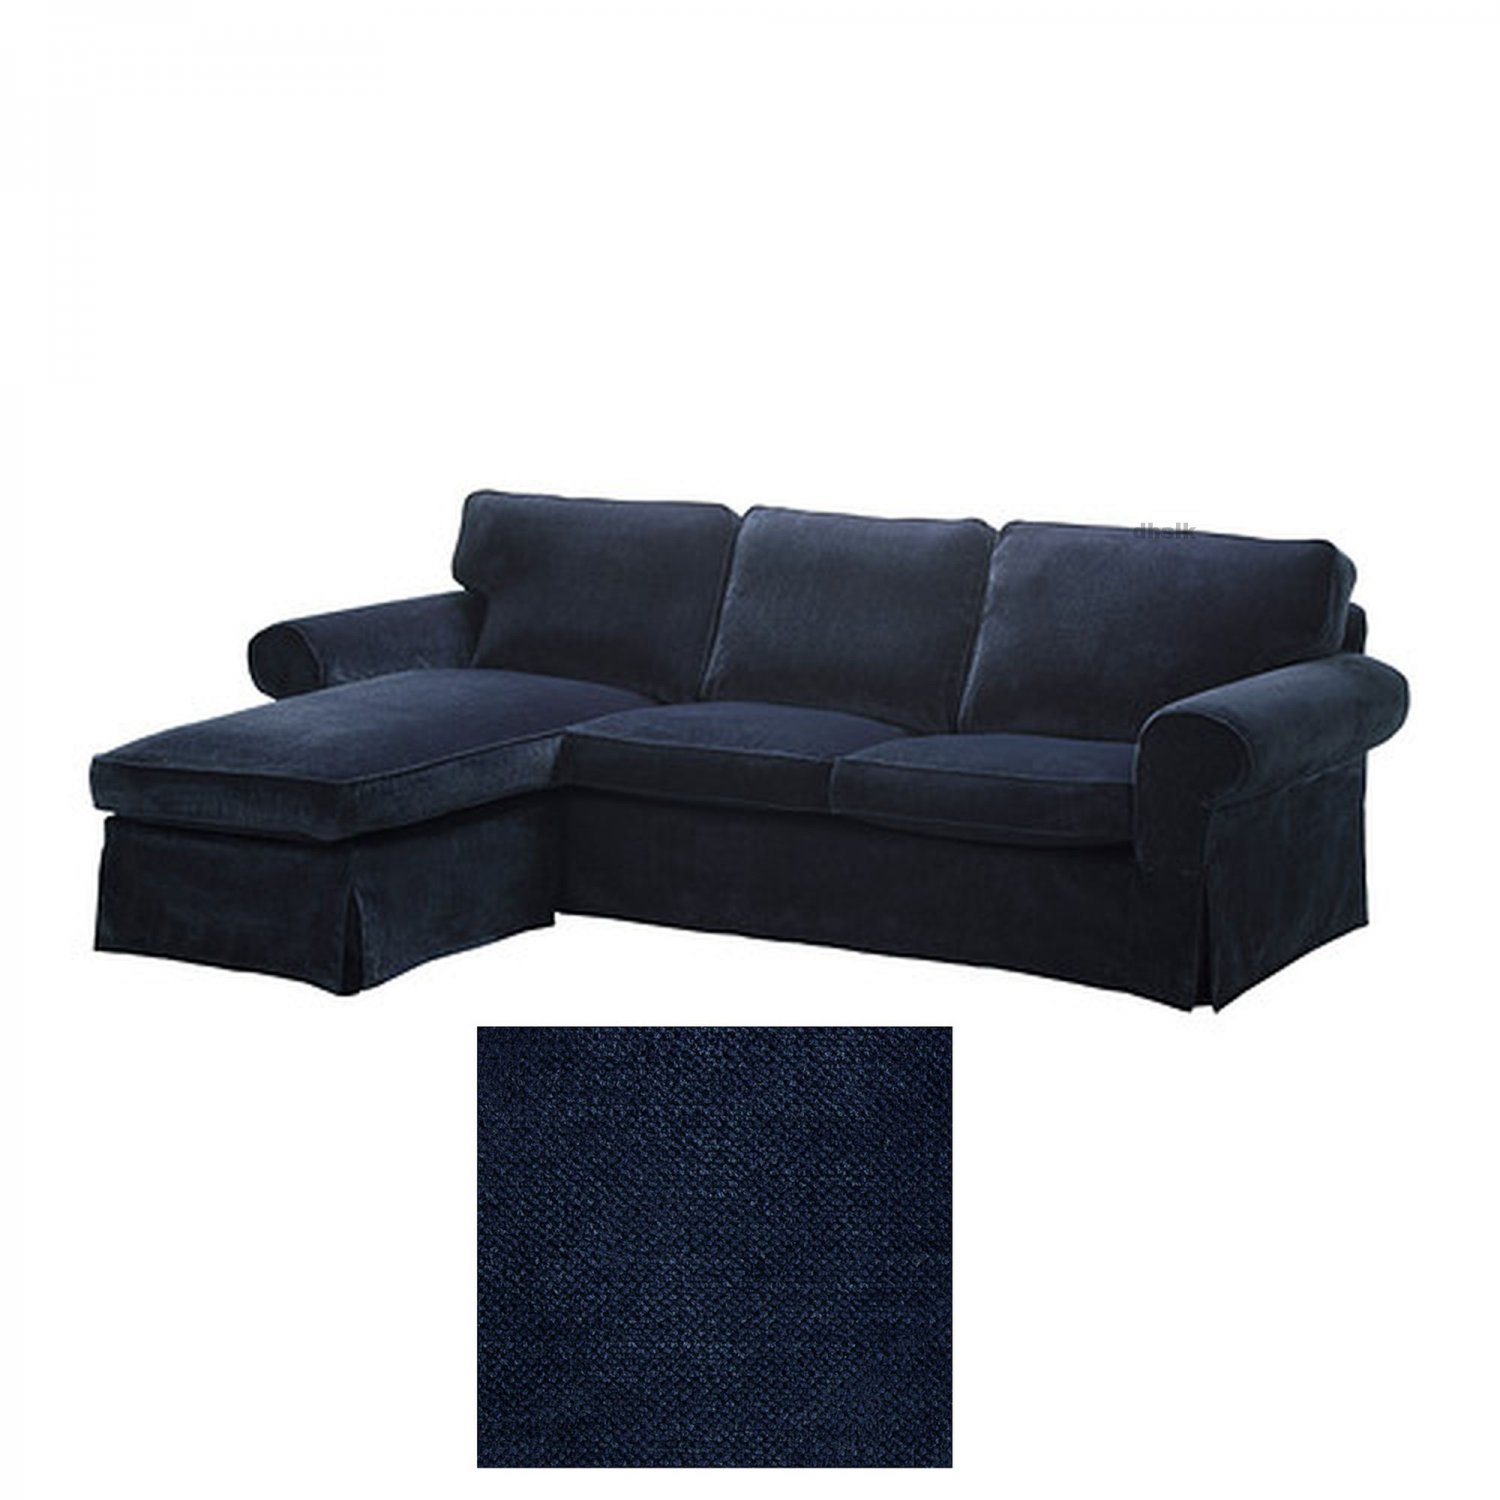 Ikea Ektorp 2 Seat Loveseat Sofa With Chaise Cover Slipcover Vellinge Dark Blue